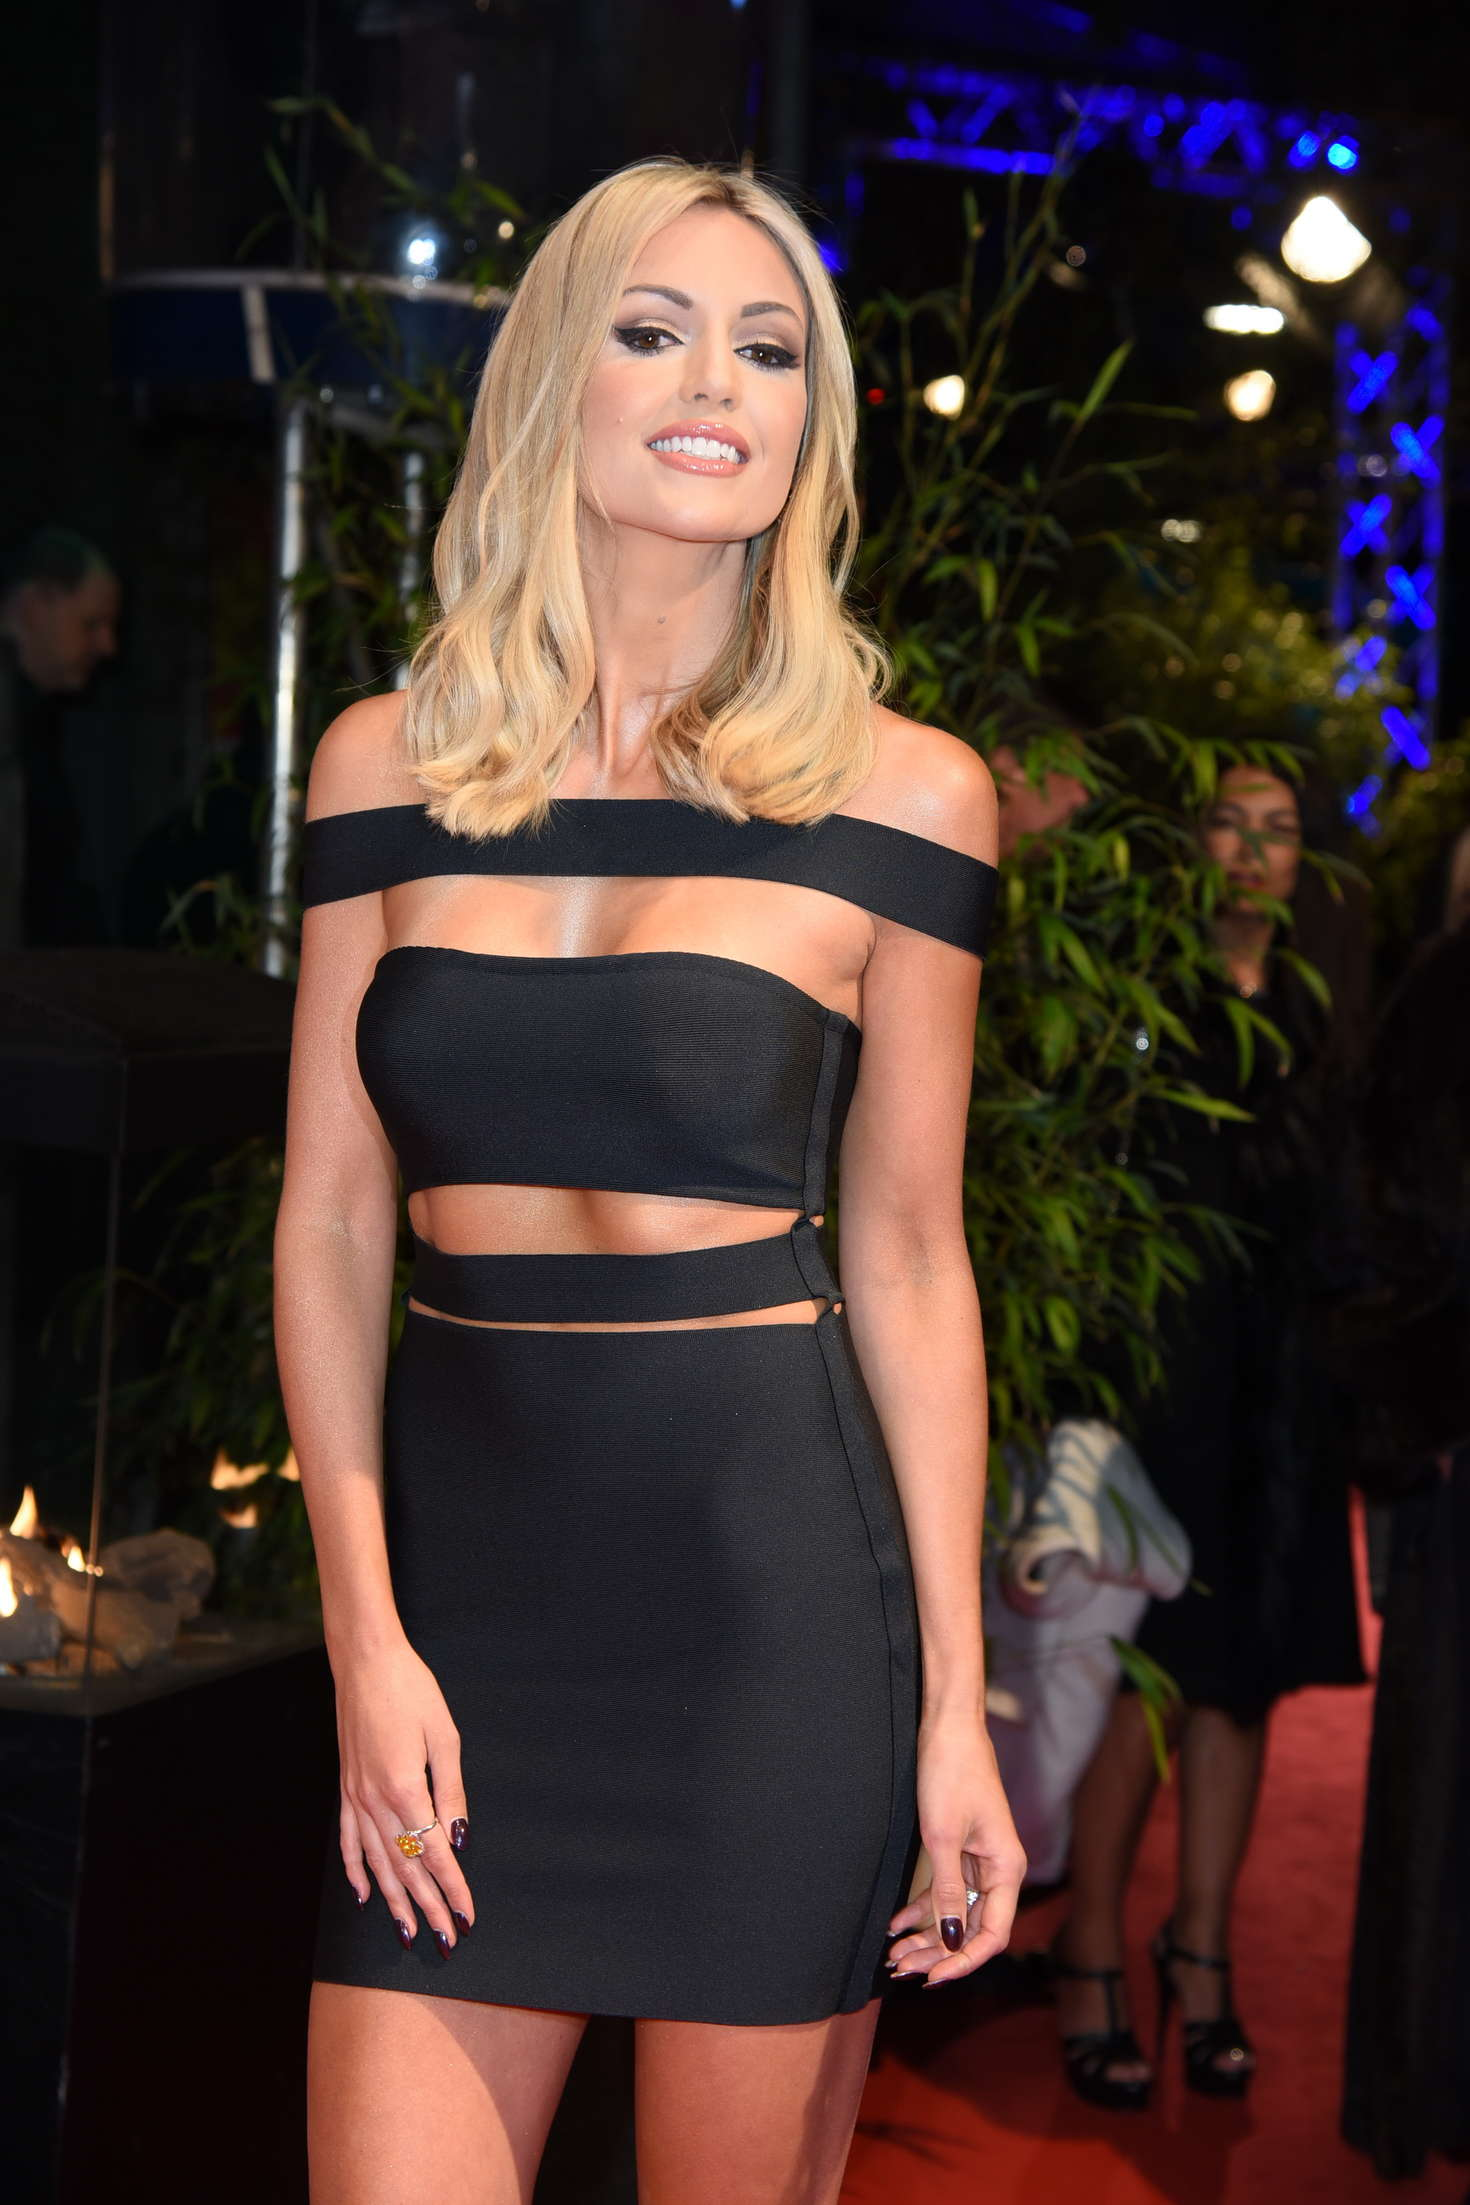 Rosanna Davison - Lambertz Monday Night 2016 in Cologne